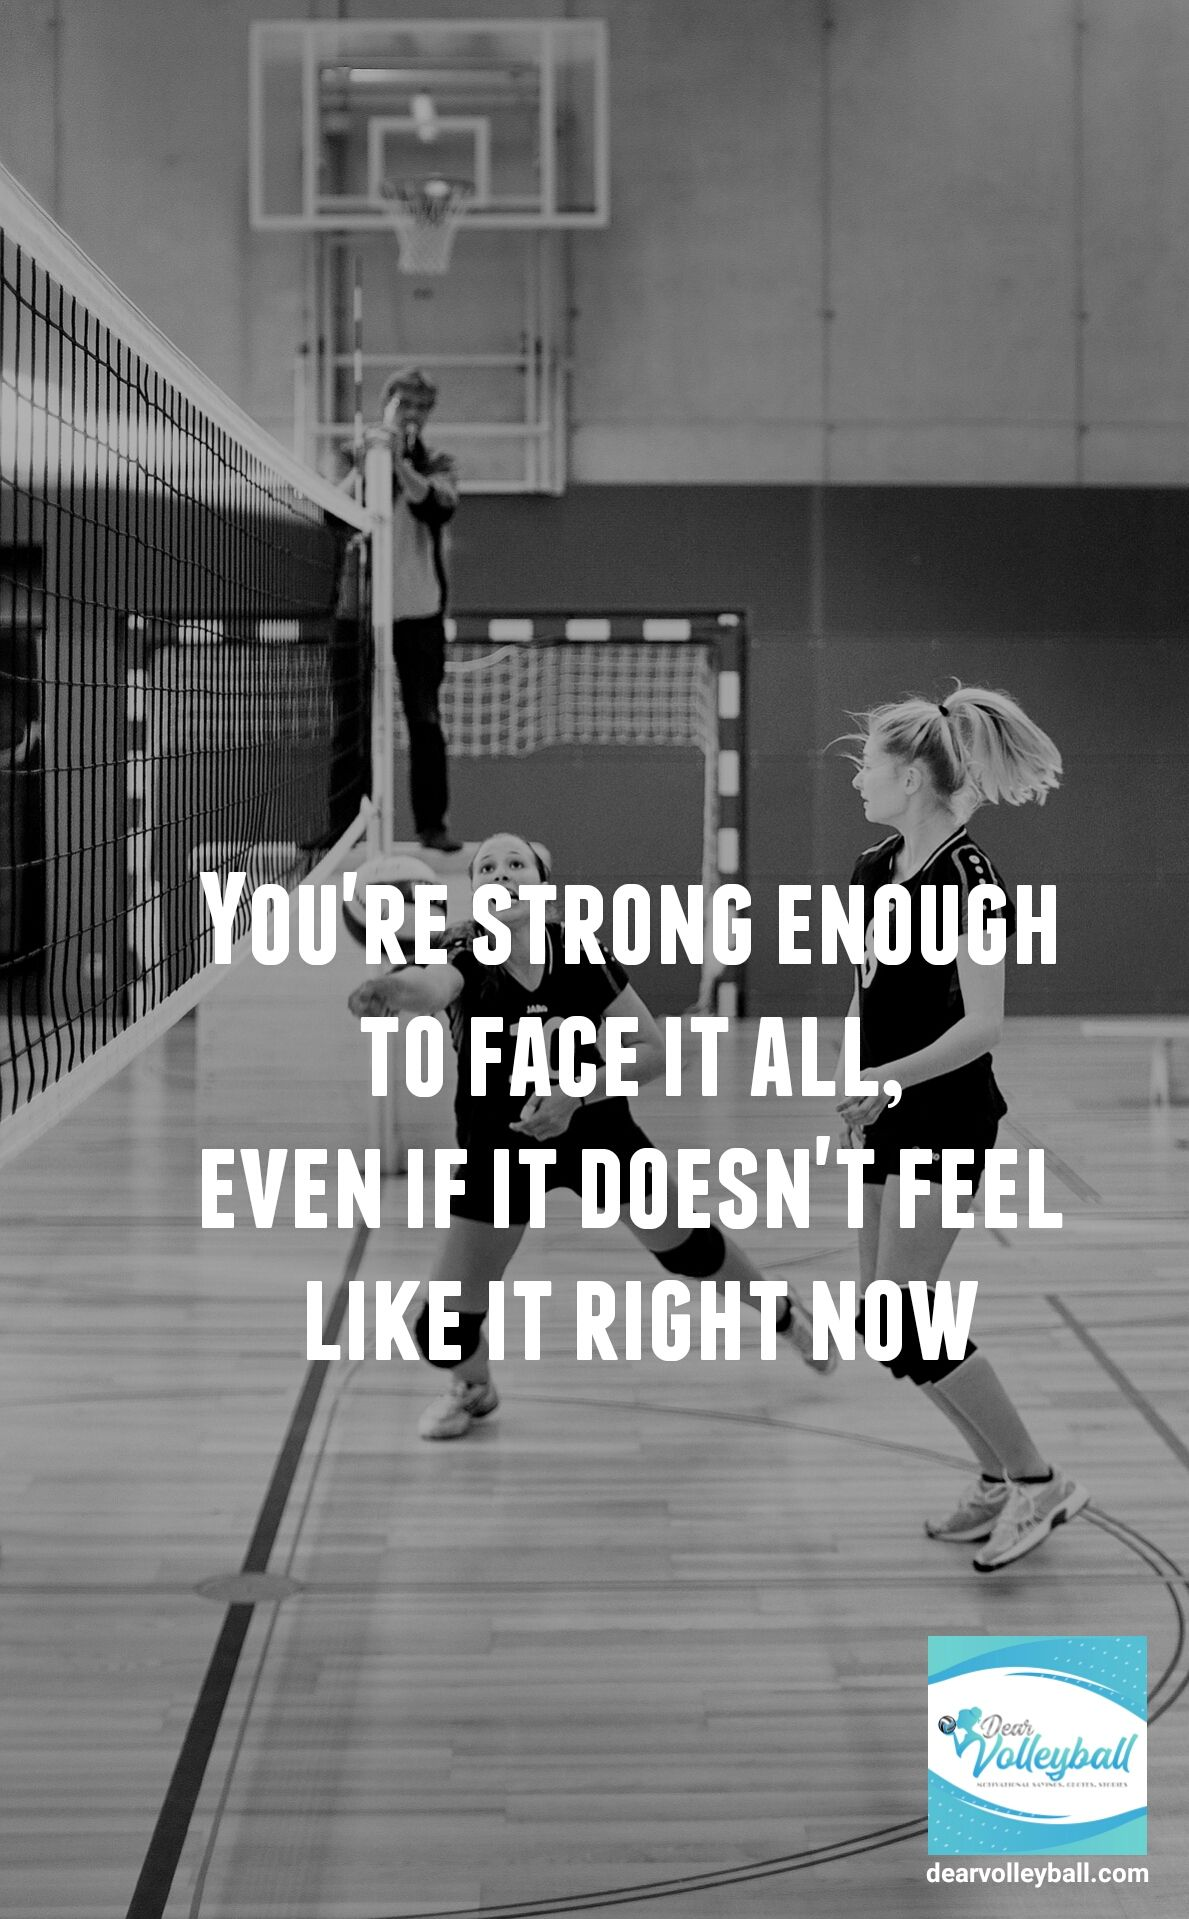 Your Volleyball Quotes Sayings Stories Inspired Me Today Thanks Inspirational Volleyball Quotes Volleyball Motivation Volleyball Inspiration